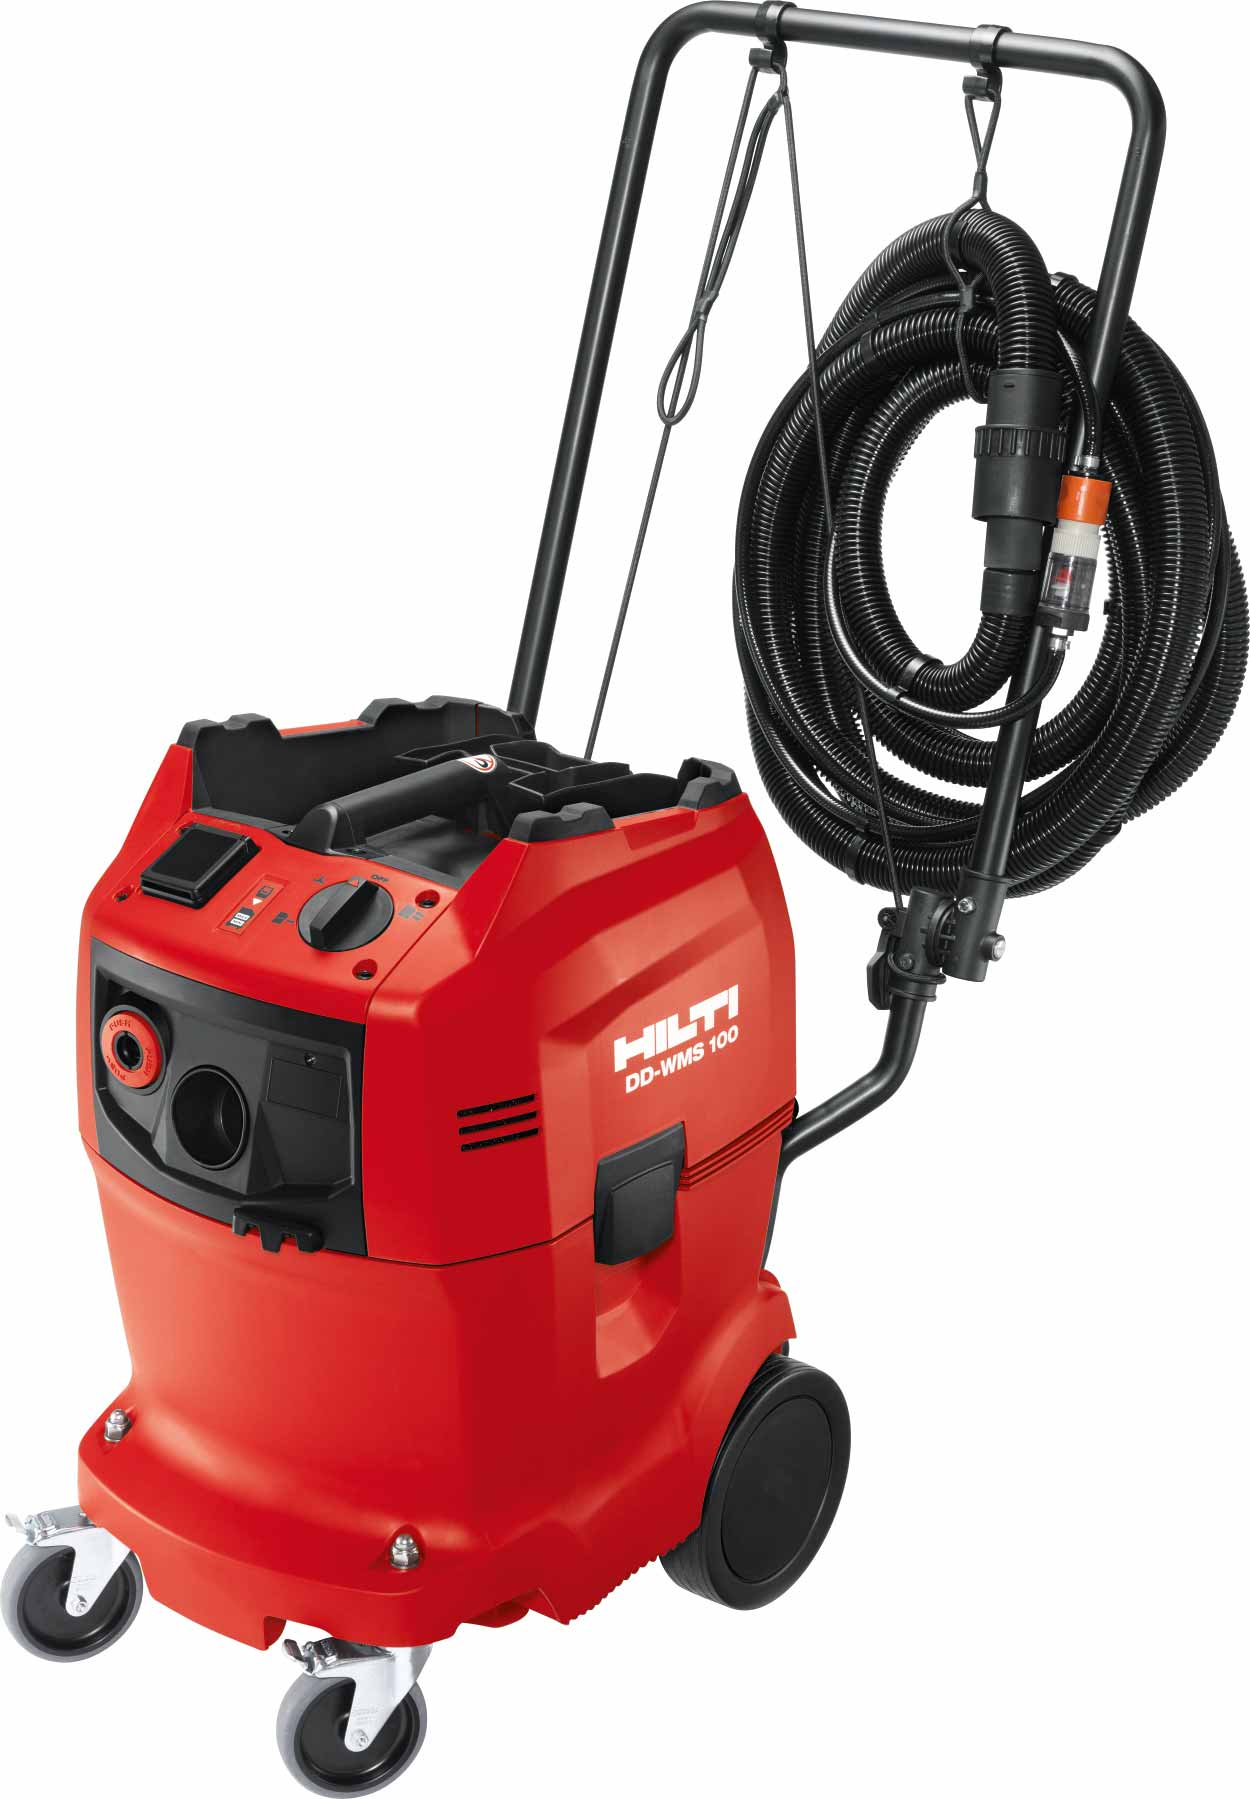 Hilti DD-WMS 100 water management systeem